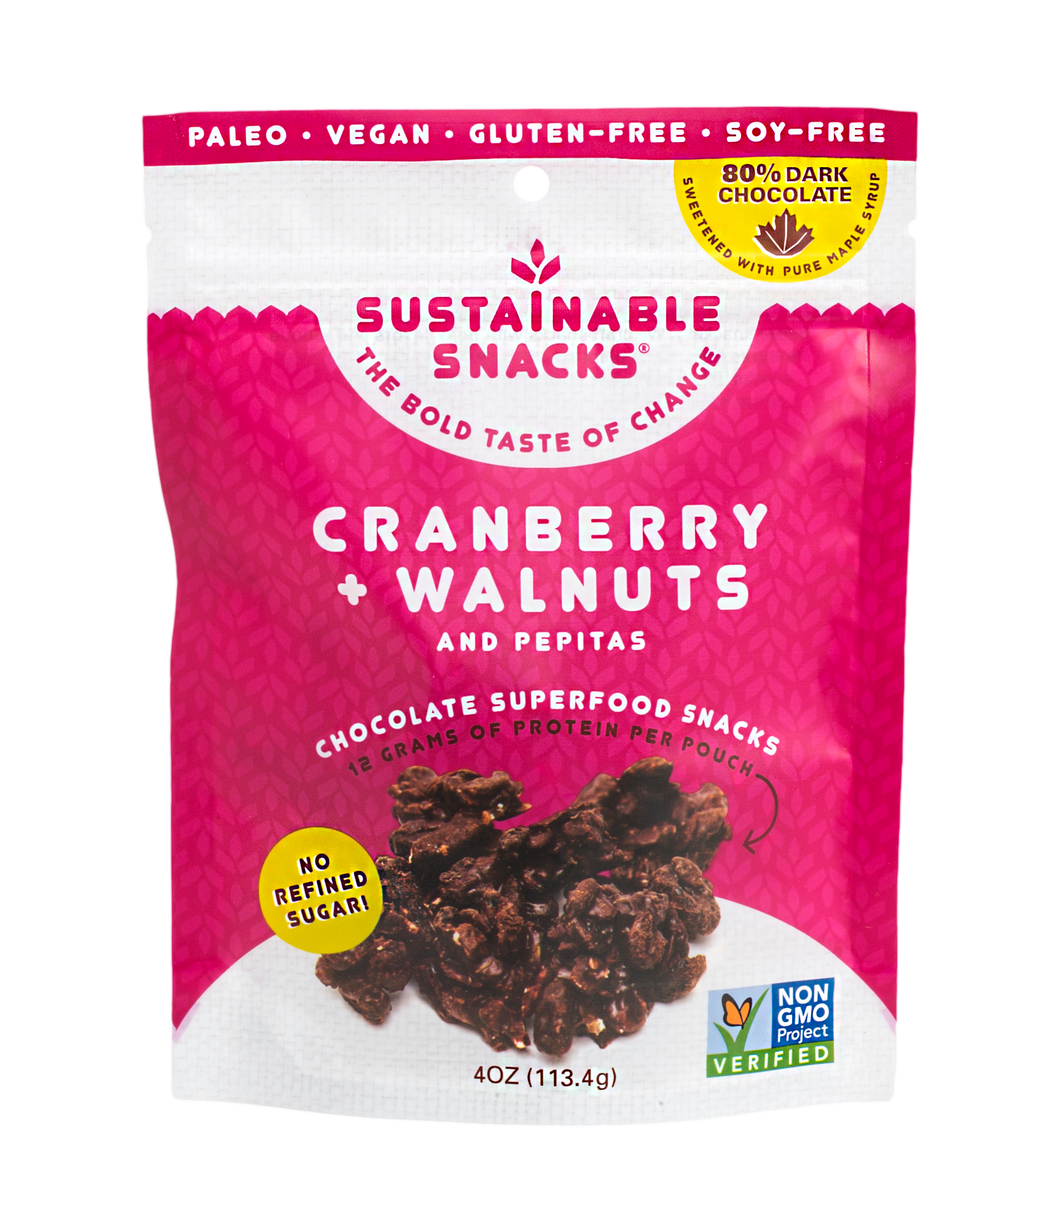 Chocolate Superfood Snacks - Cranberry + Walnuts with Pepitas